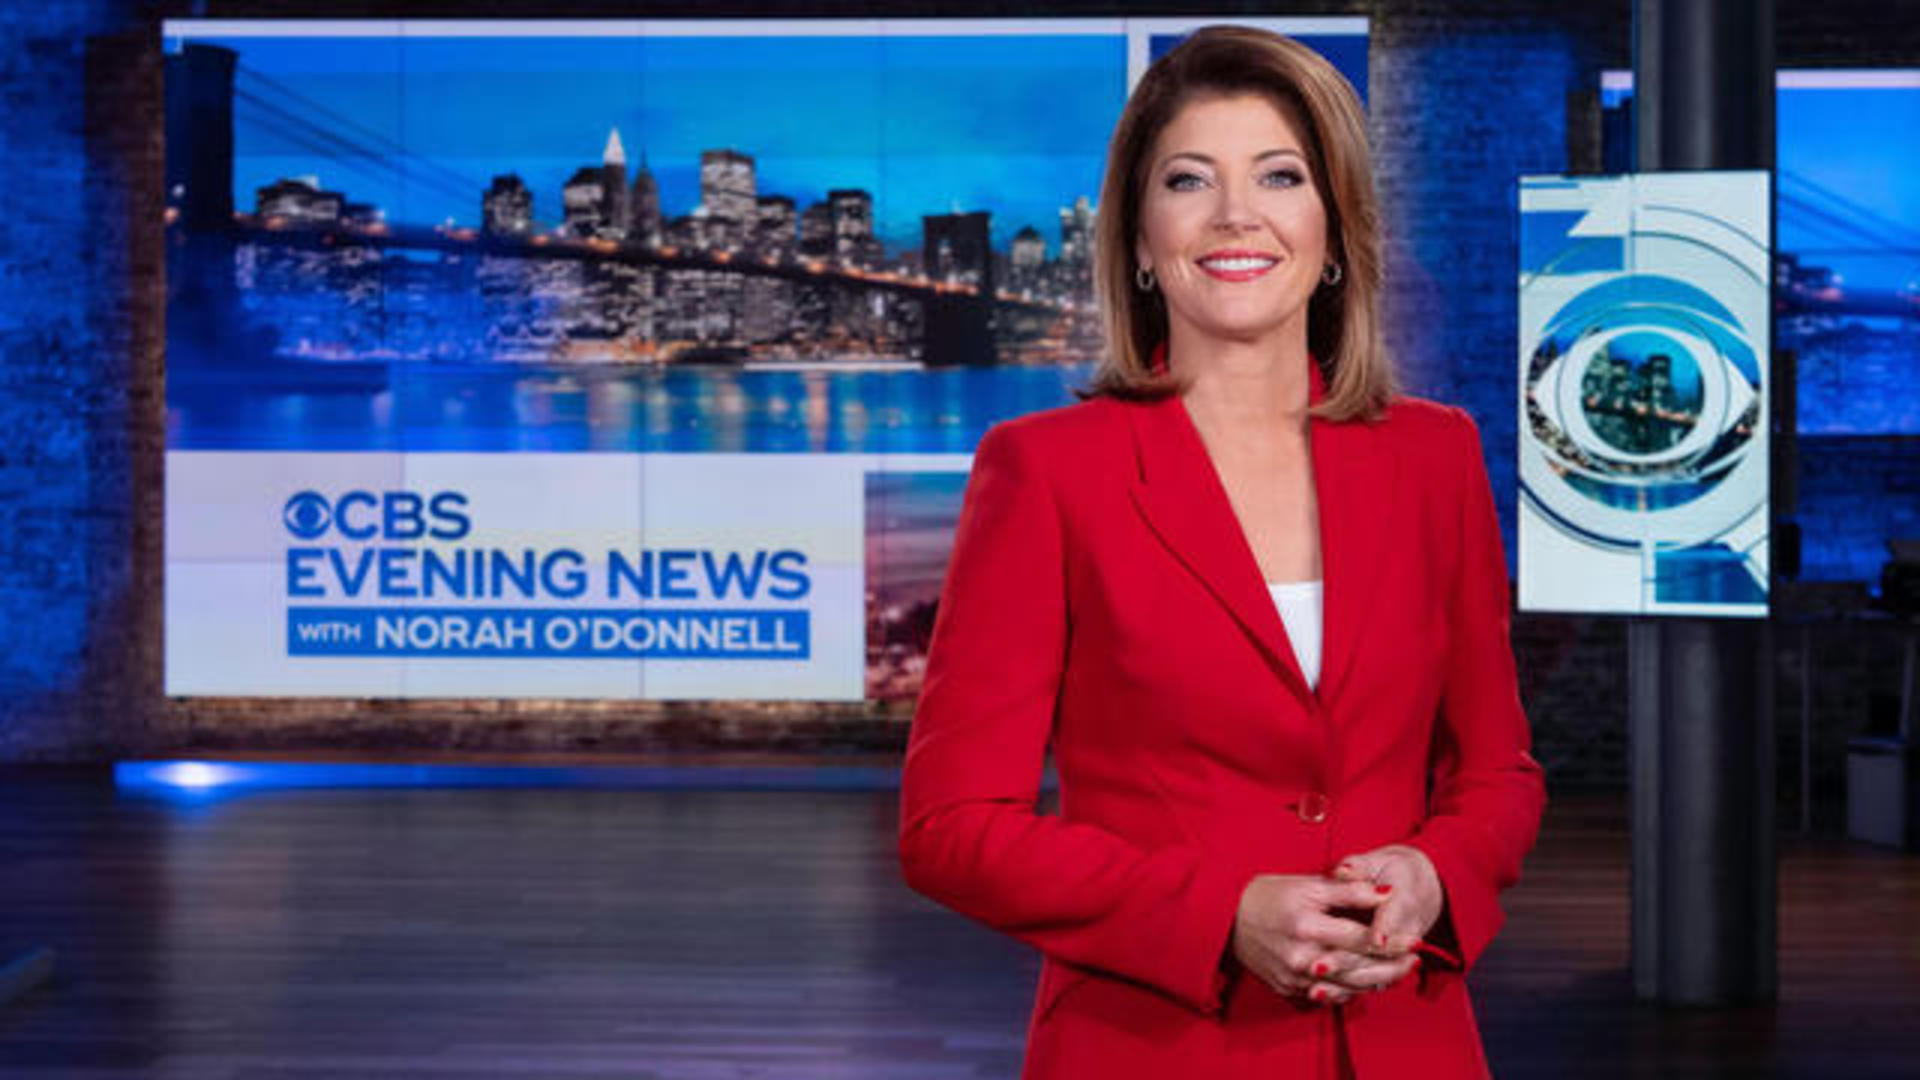 Cbs Evening News With Norah O Donnell To Debut July 15 Cbs News